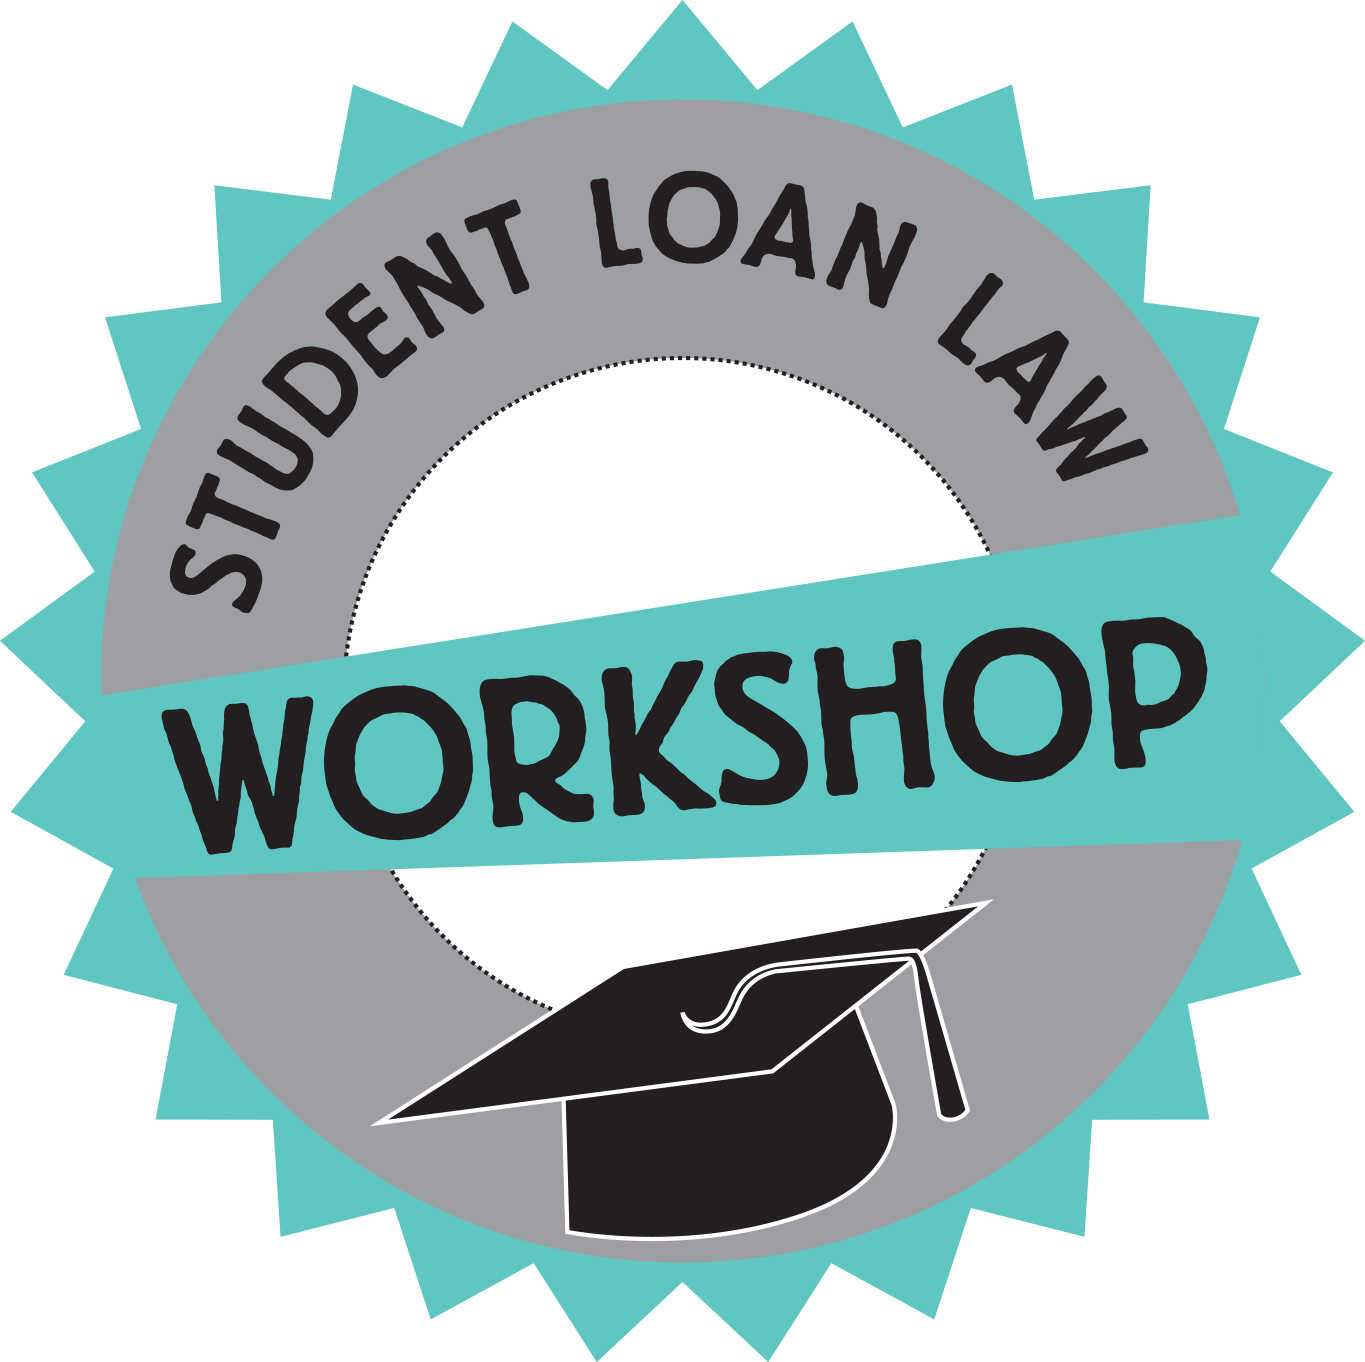 Student Loan Law Workshop